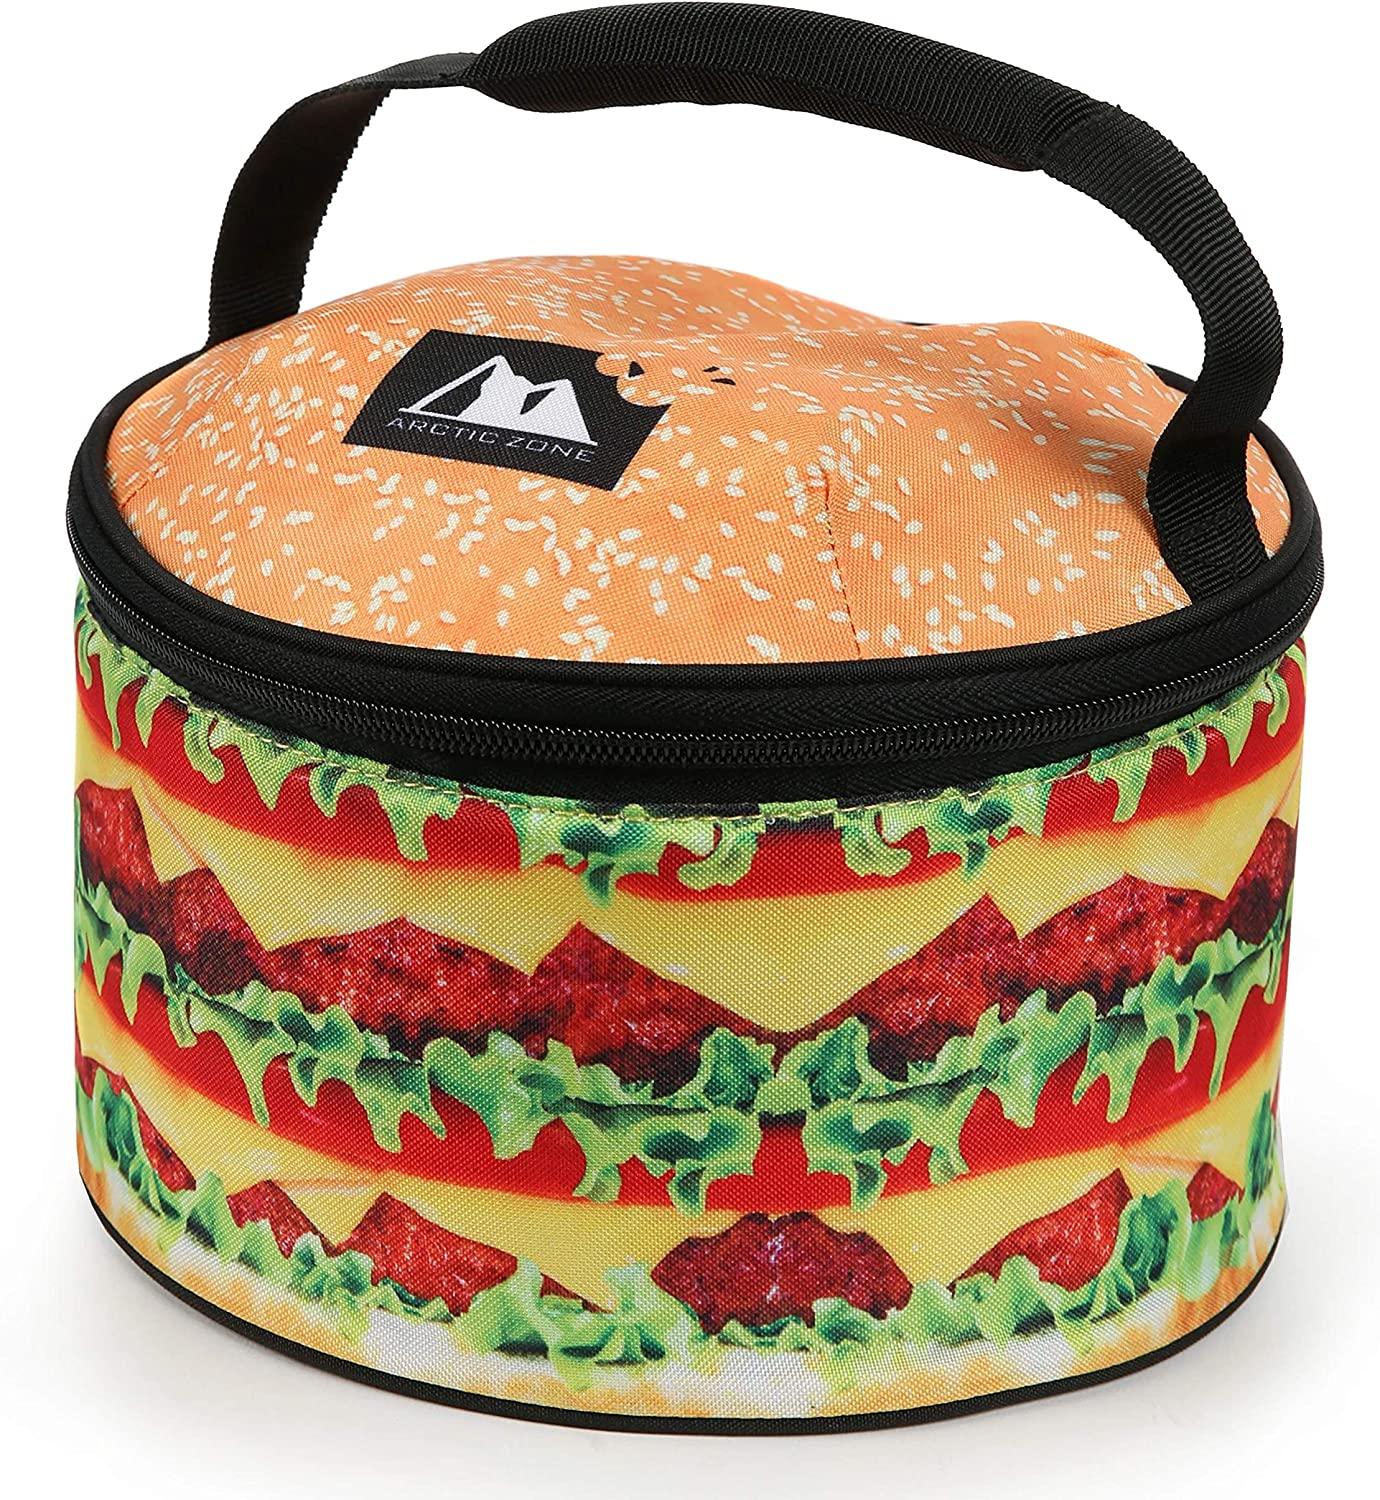 Hamburger Insulated Lunch Tote Bag Arctic Zone Insulated Leak Proof